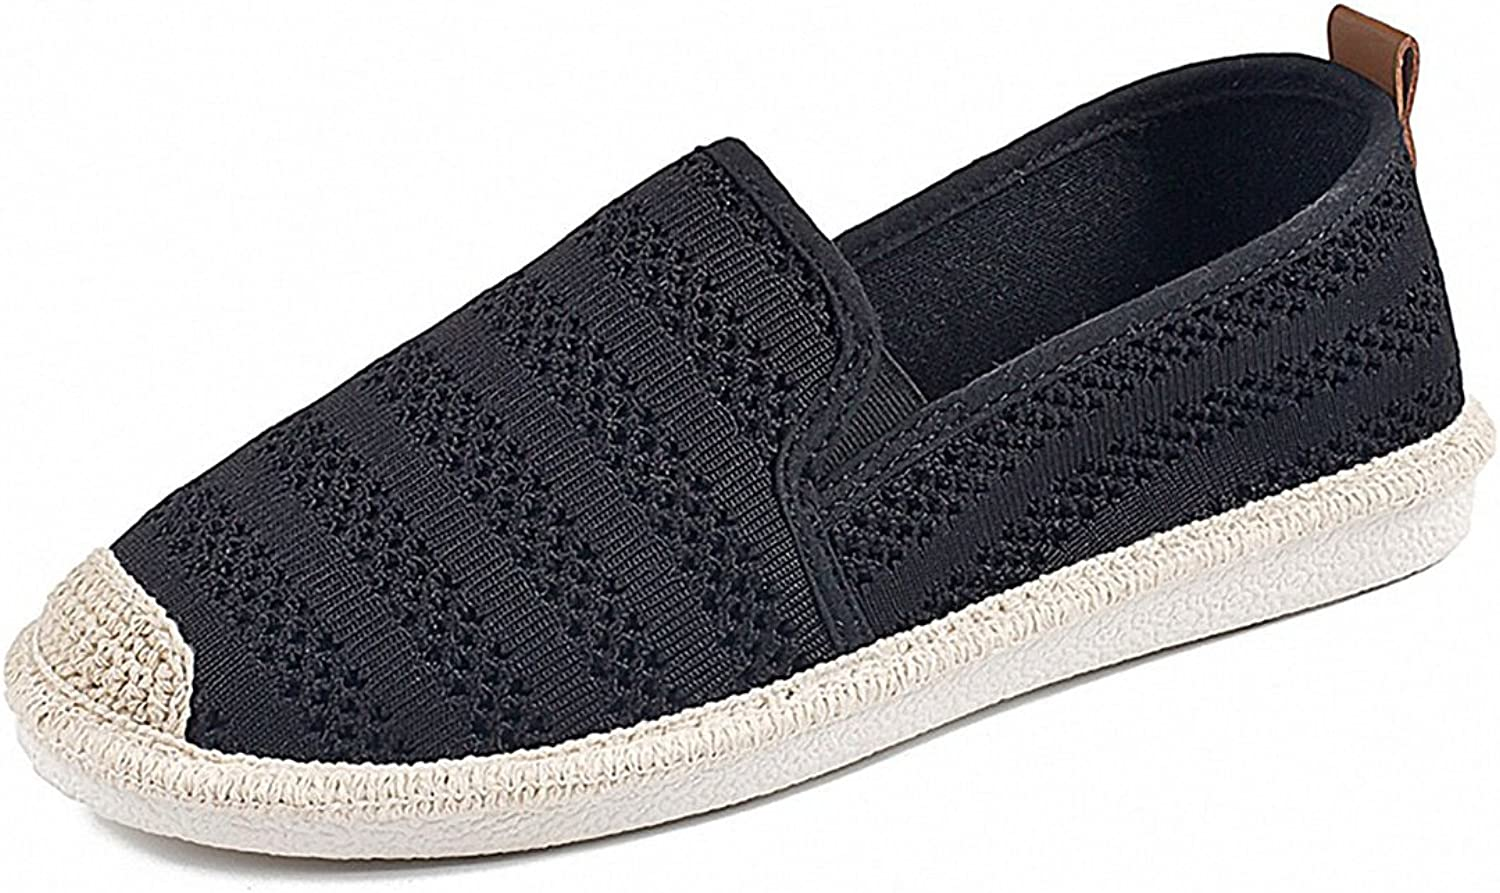 Women's Mesh Slip On Loafer Casual Flats Walking Espadrille Sneakers